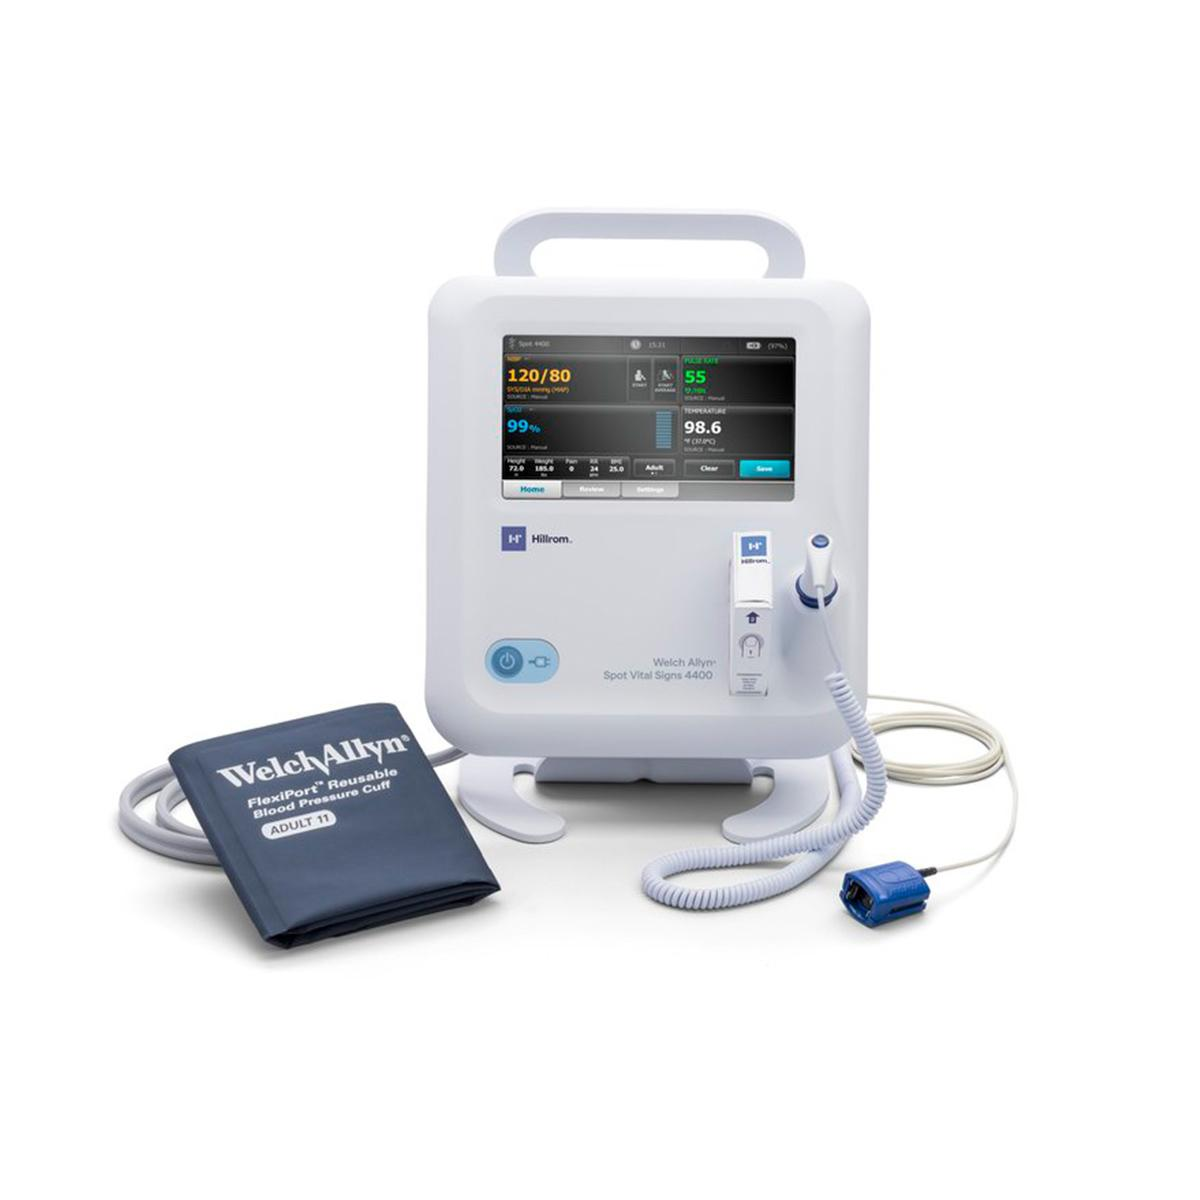 A Spot Vital Signs® 4400 Device with pulse oximeter, digital thermometer and blood pressure cuff attachments.